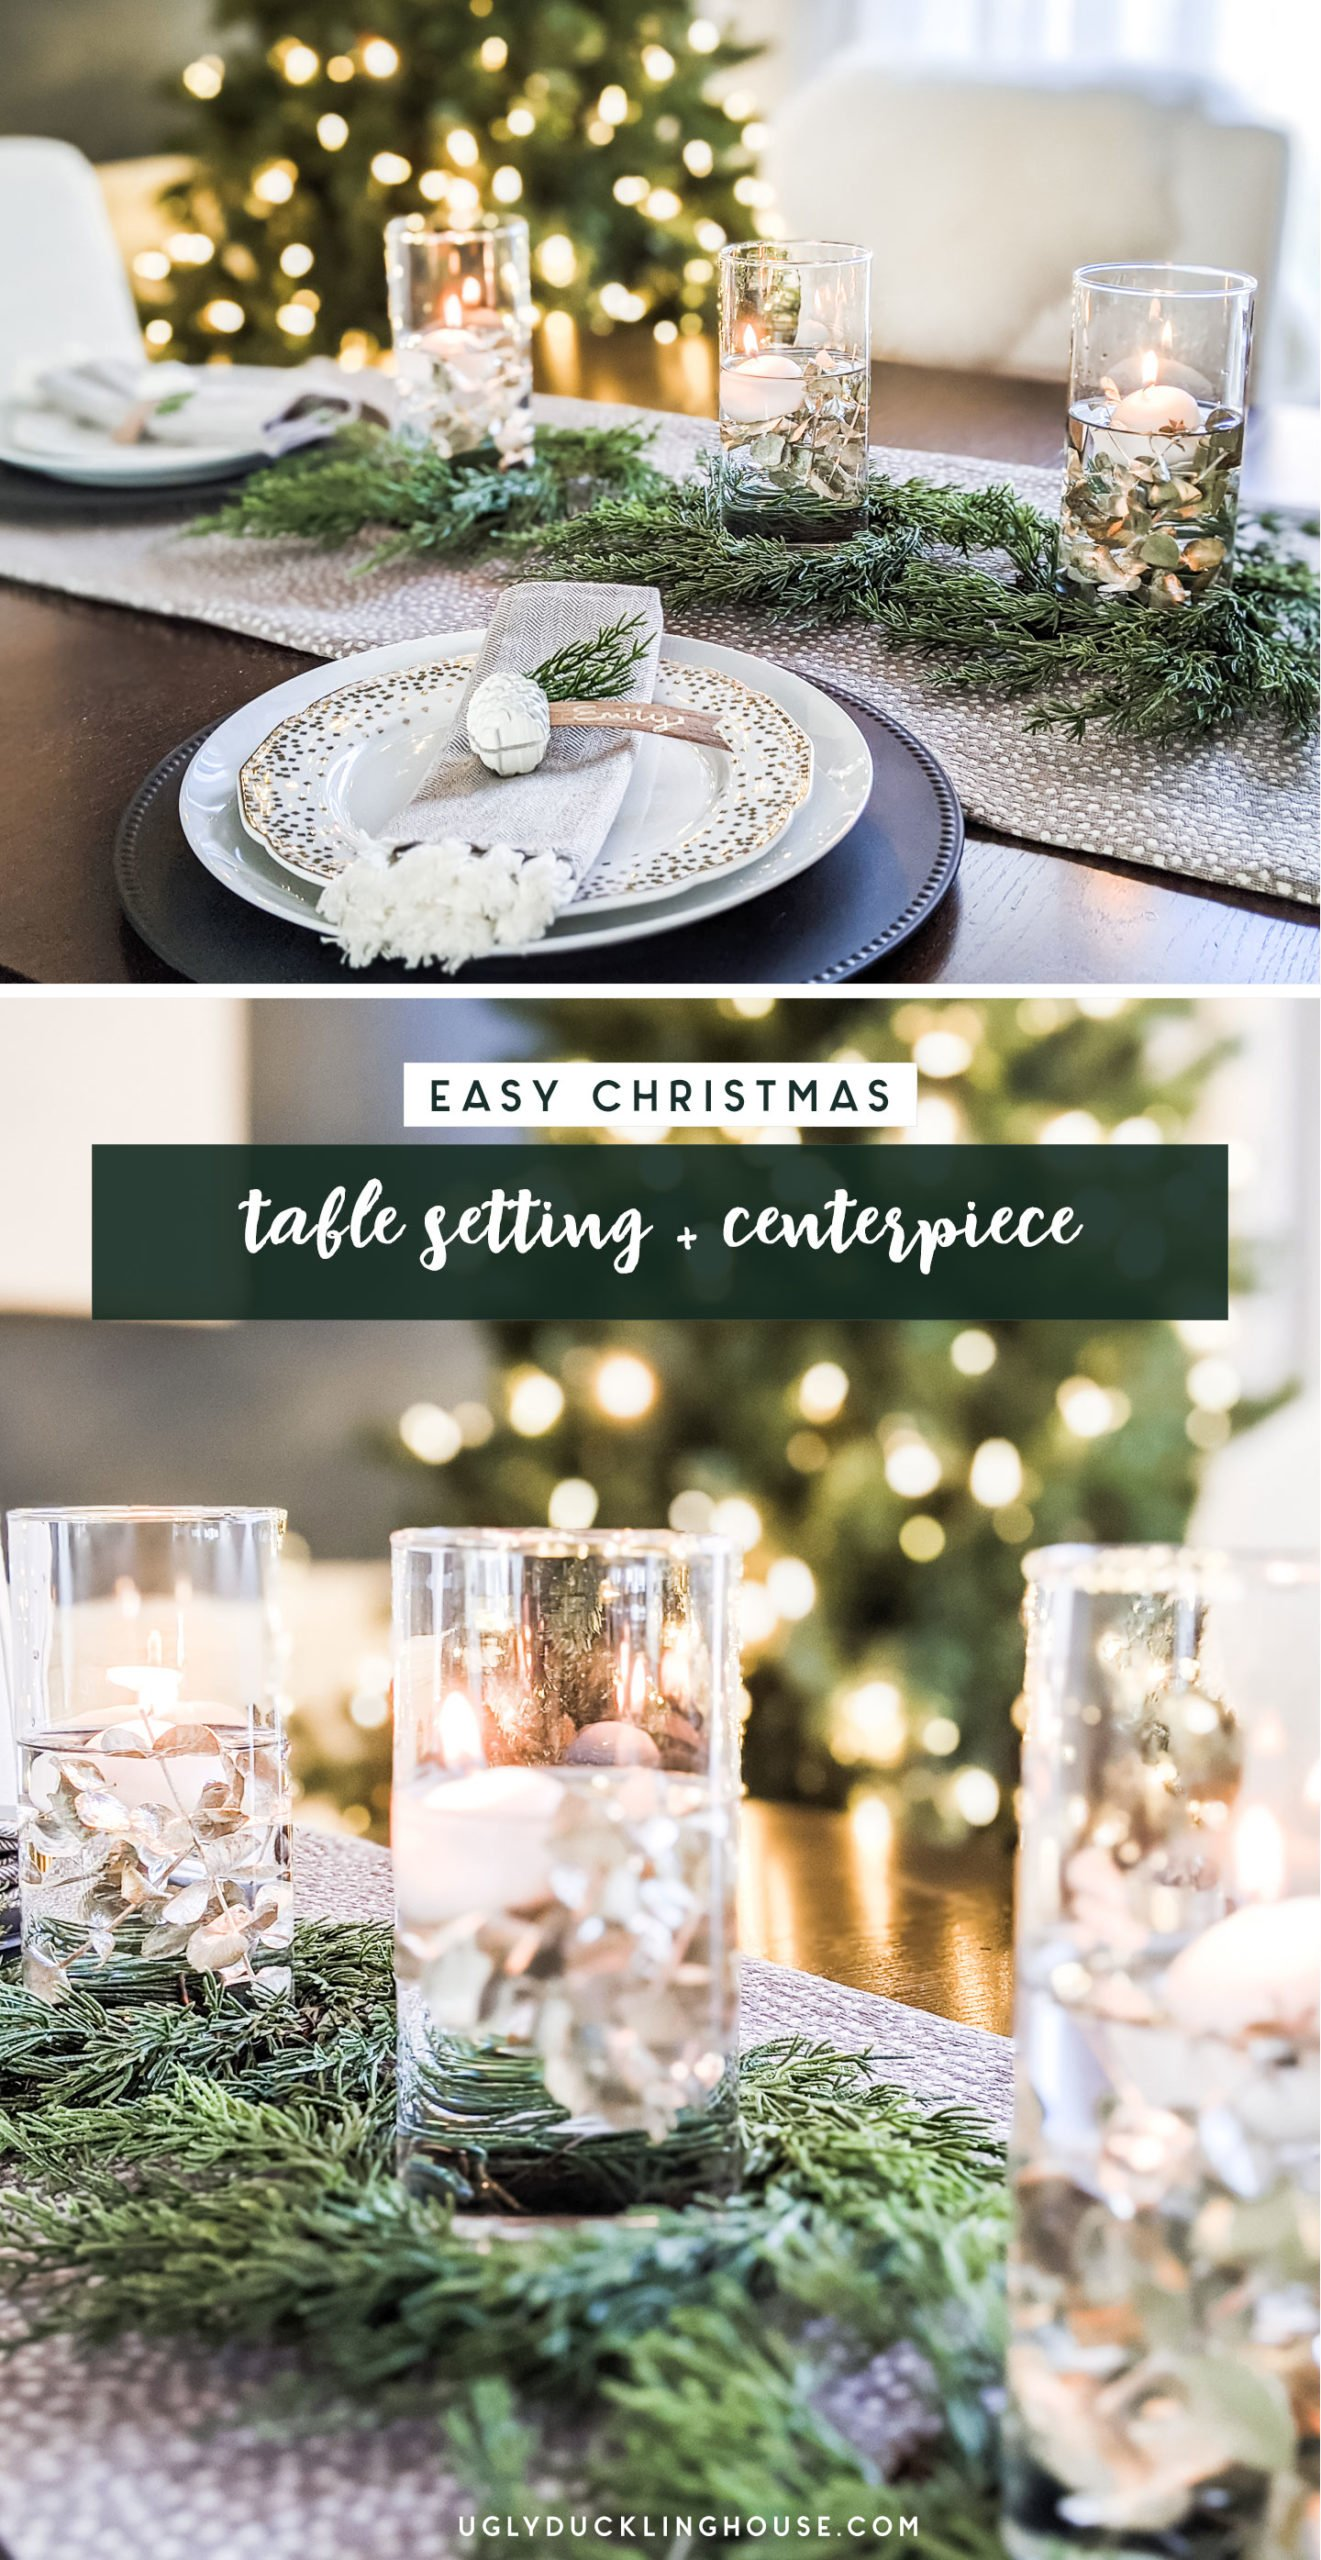 DIY Christmas Table Setting and Centerpiece • Ugly Duckling